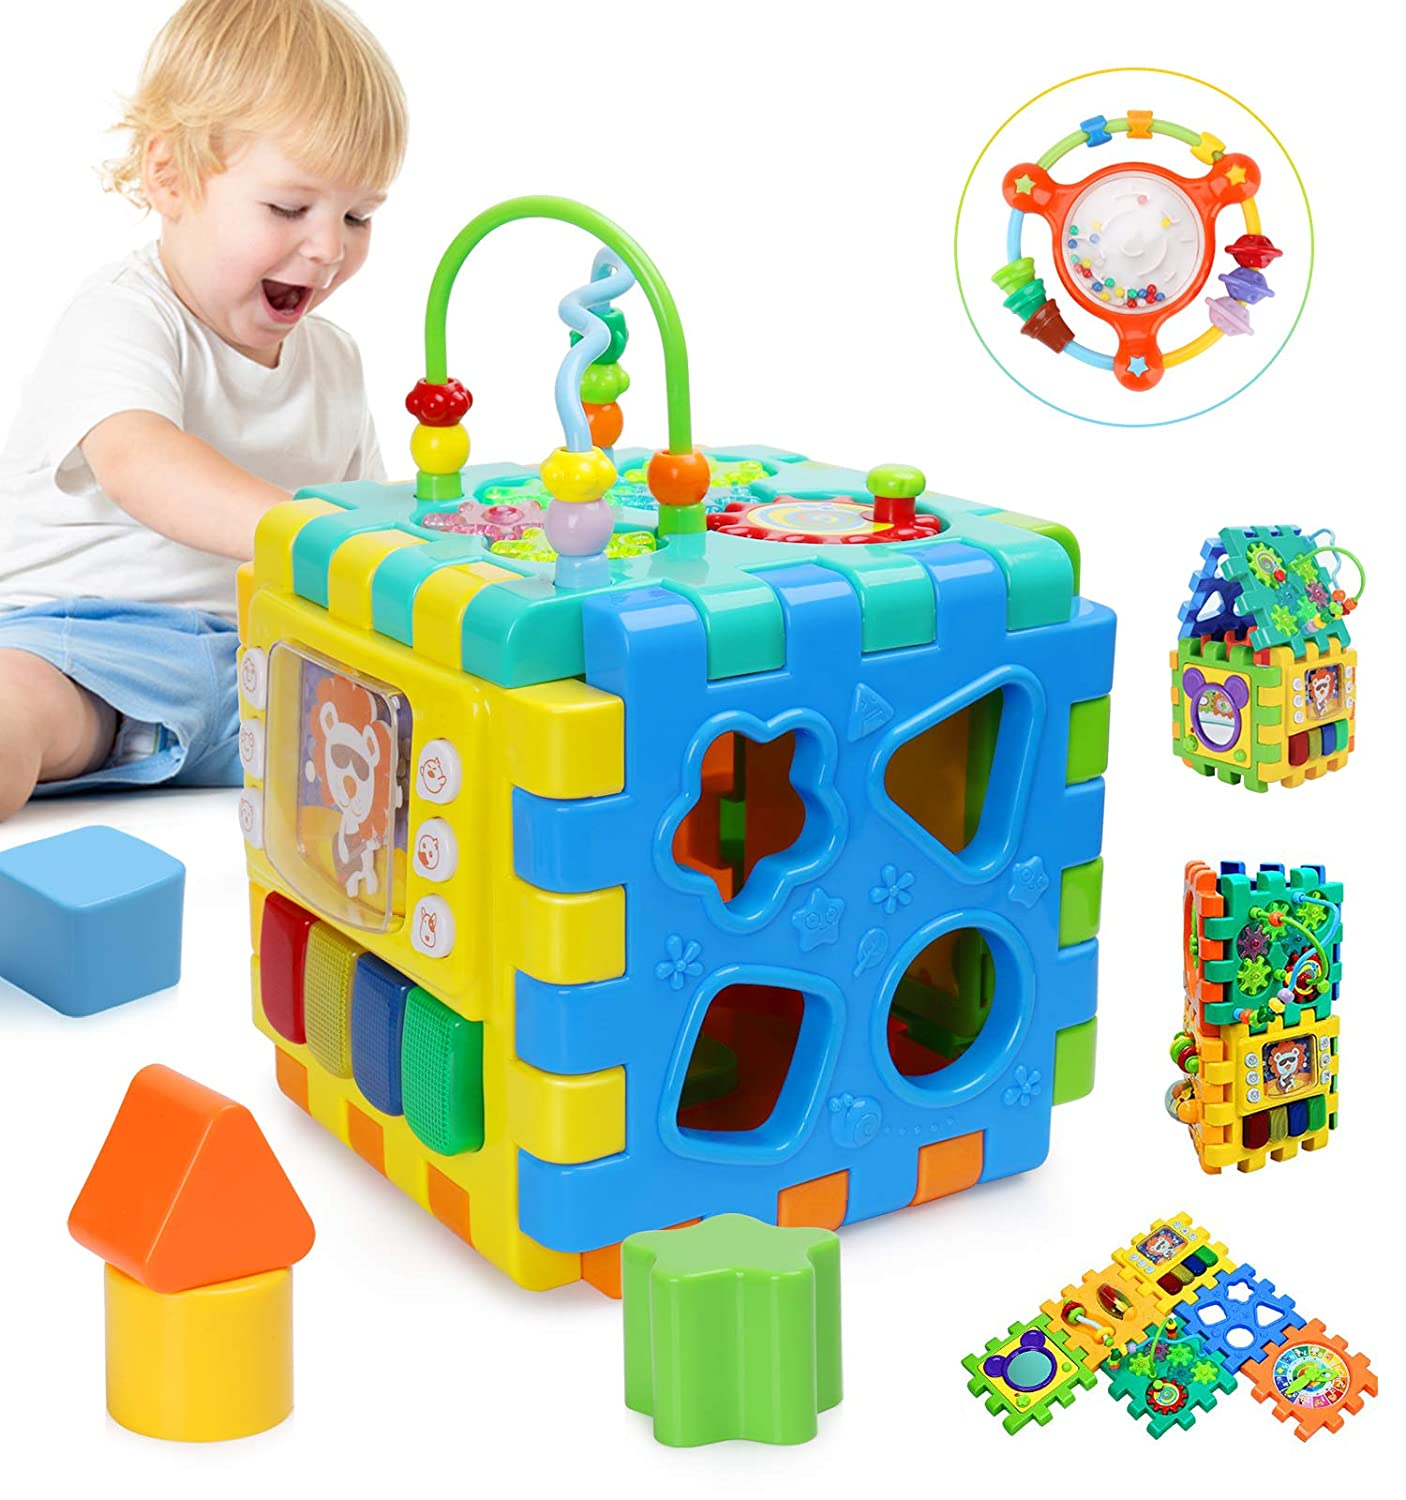 BBLIKE Baby Activity Cube, 6 in 1 Multipurpose Play Center Activity Square Play Cube for Infants & Toddlers Busy Learner Cube with Shapes Maze Music Gears Clock Educational